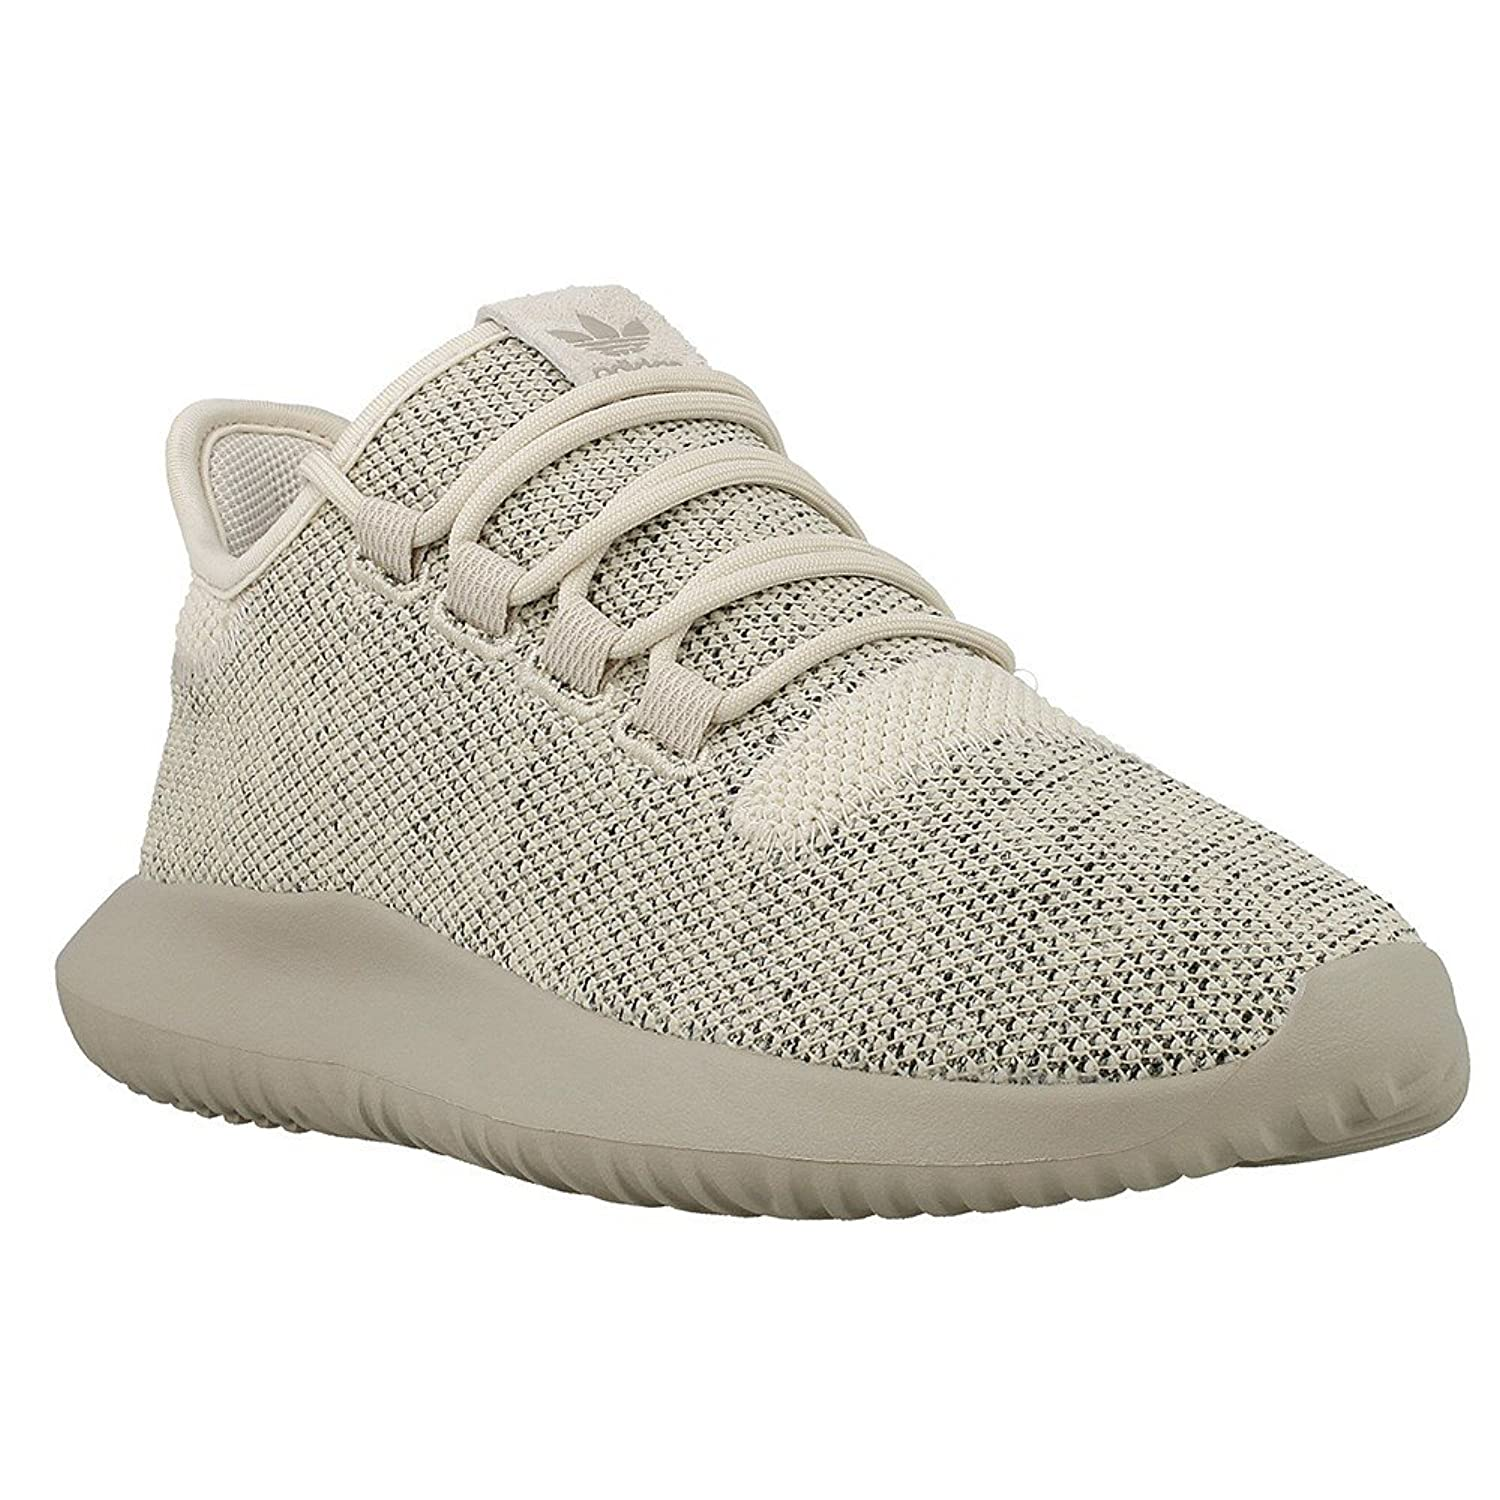 TUBULAR SHADOW KNIT CREME SNEAKERS The Goods Dept